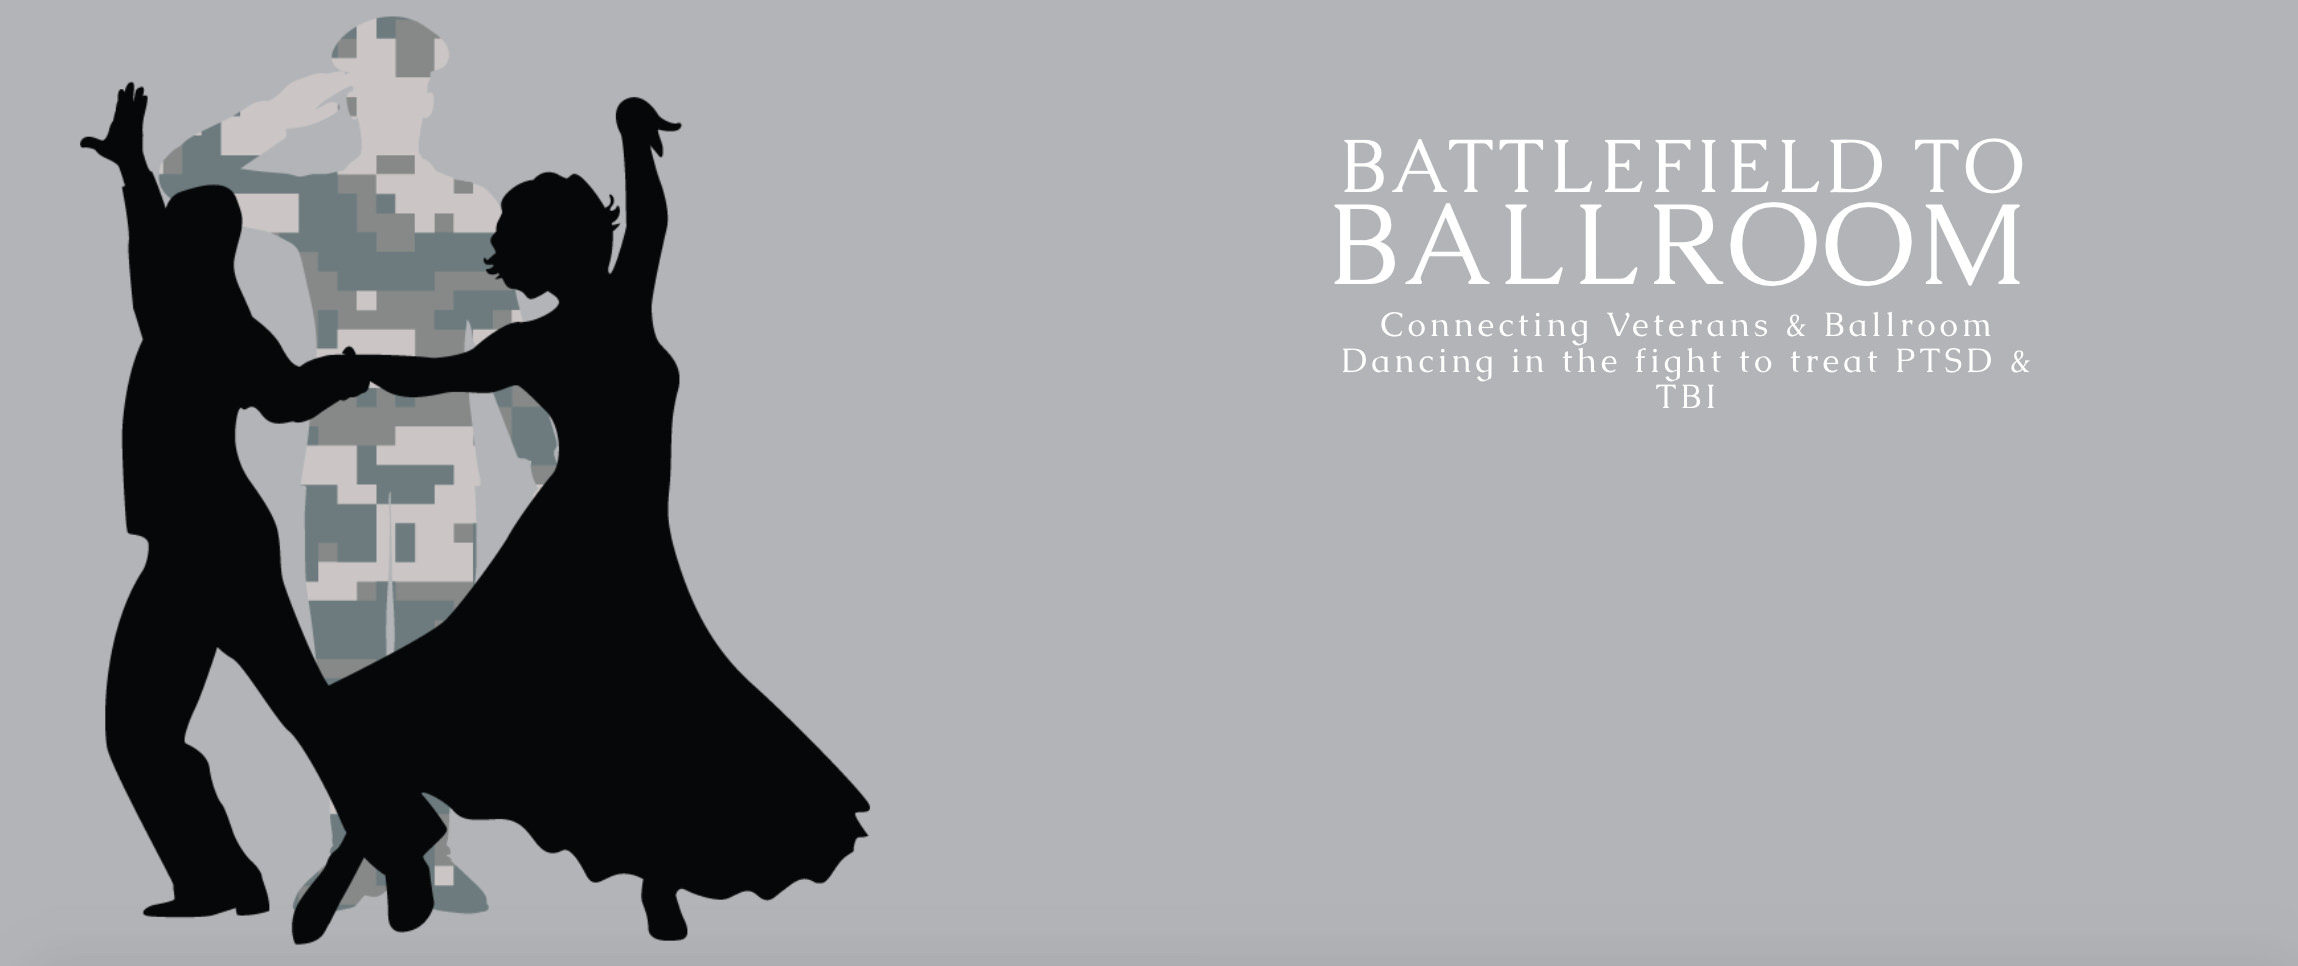 Battlefield to ballroom